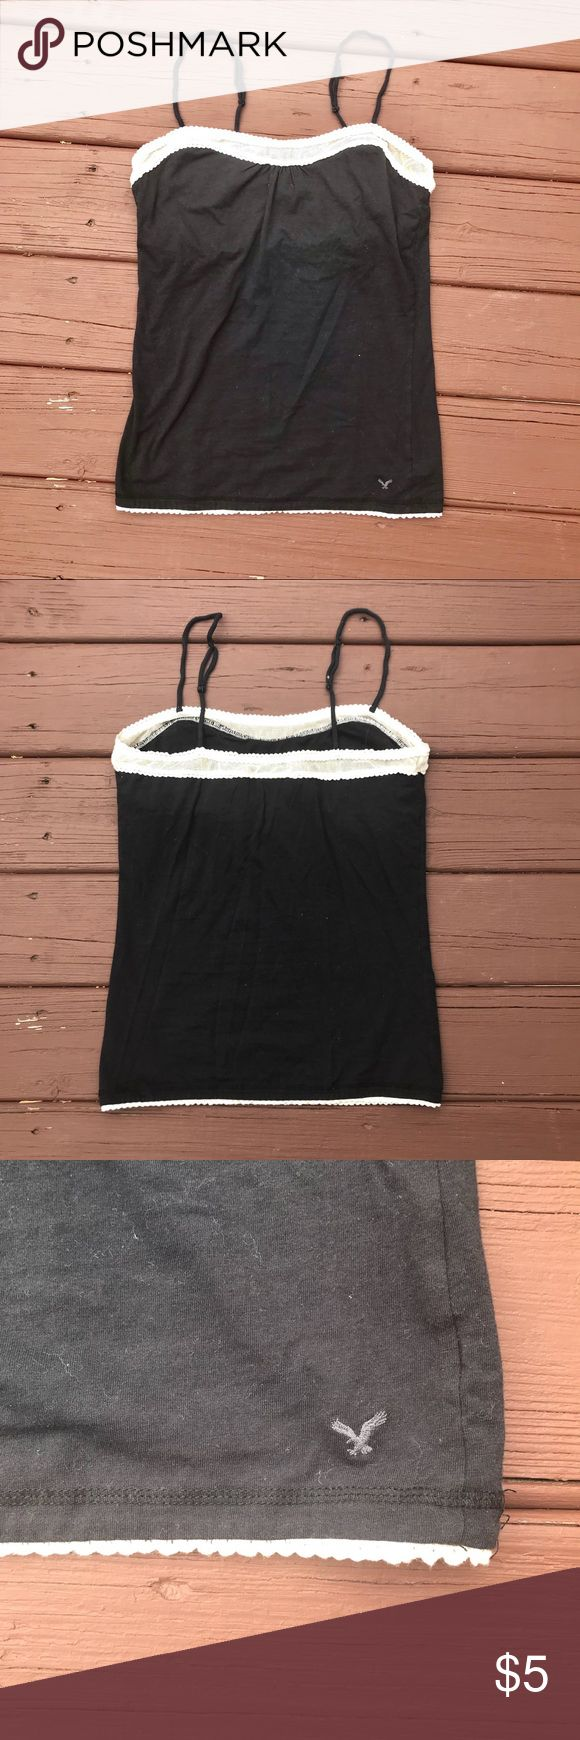 American Eagle Black Cami With White Trim Black cami from American Eagle with pretty white lace trim. It's comfy and 95% cotton, 5% spandex. The measurements are: Underarm to underarm: 16in Underarm to bottom: 18in American Eagle Outfitters Tops Camisoles